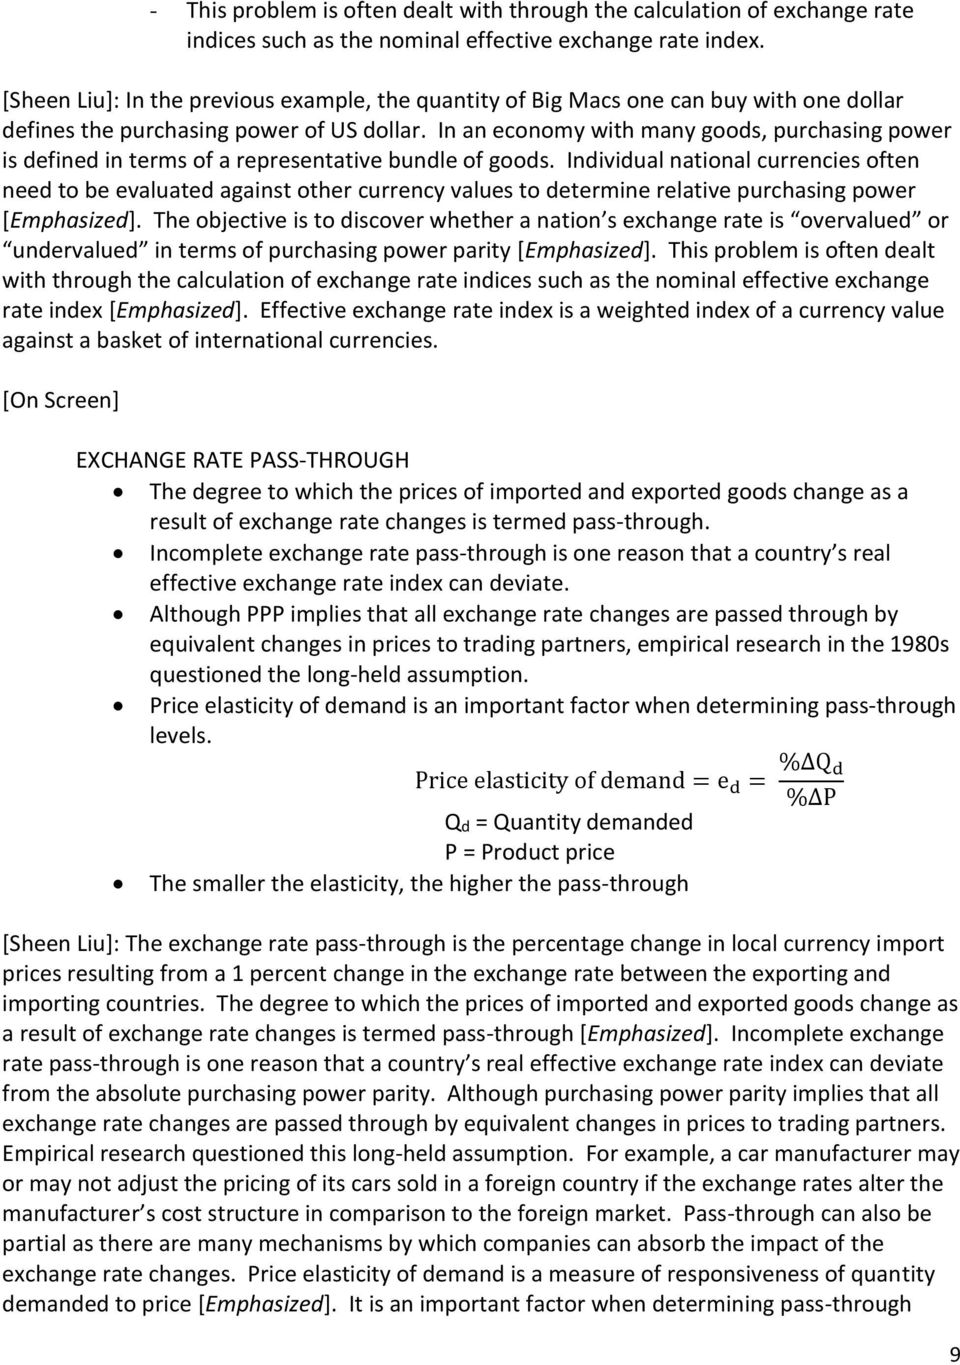 In an economy with many goods, purchasing power is defined in terms of a representative bundle of goods.